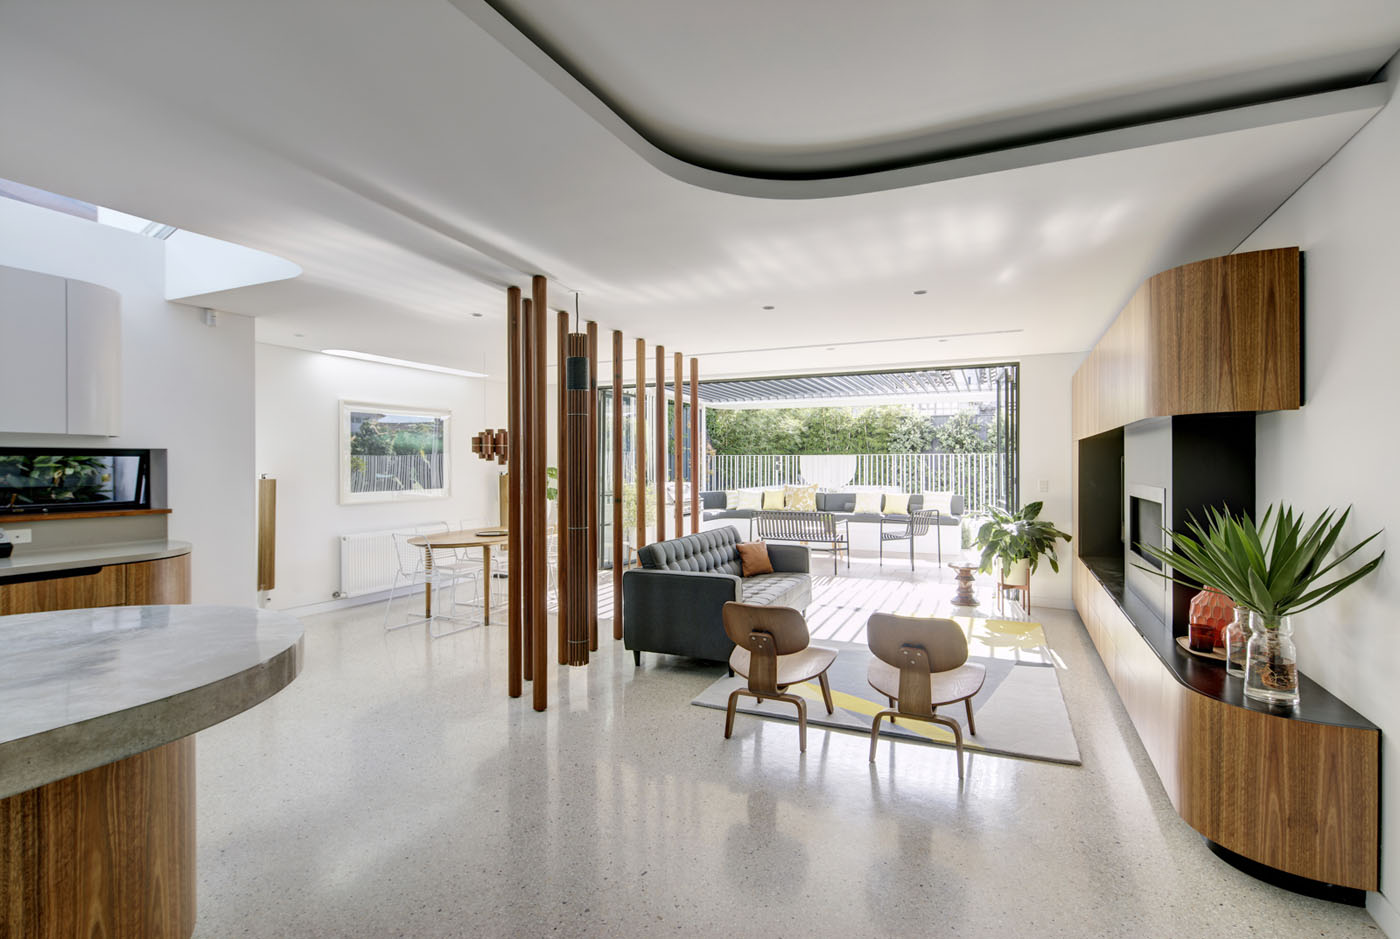 Conway Atkins House in Dover Heights by Sydney architect Sam Crawford Architect. The polished concrete floor reflects light from the yard.